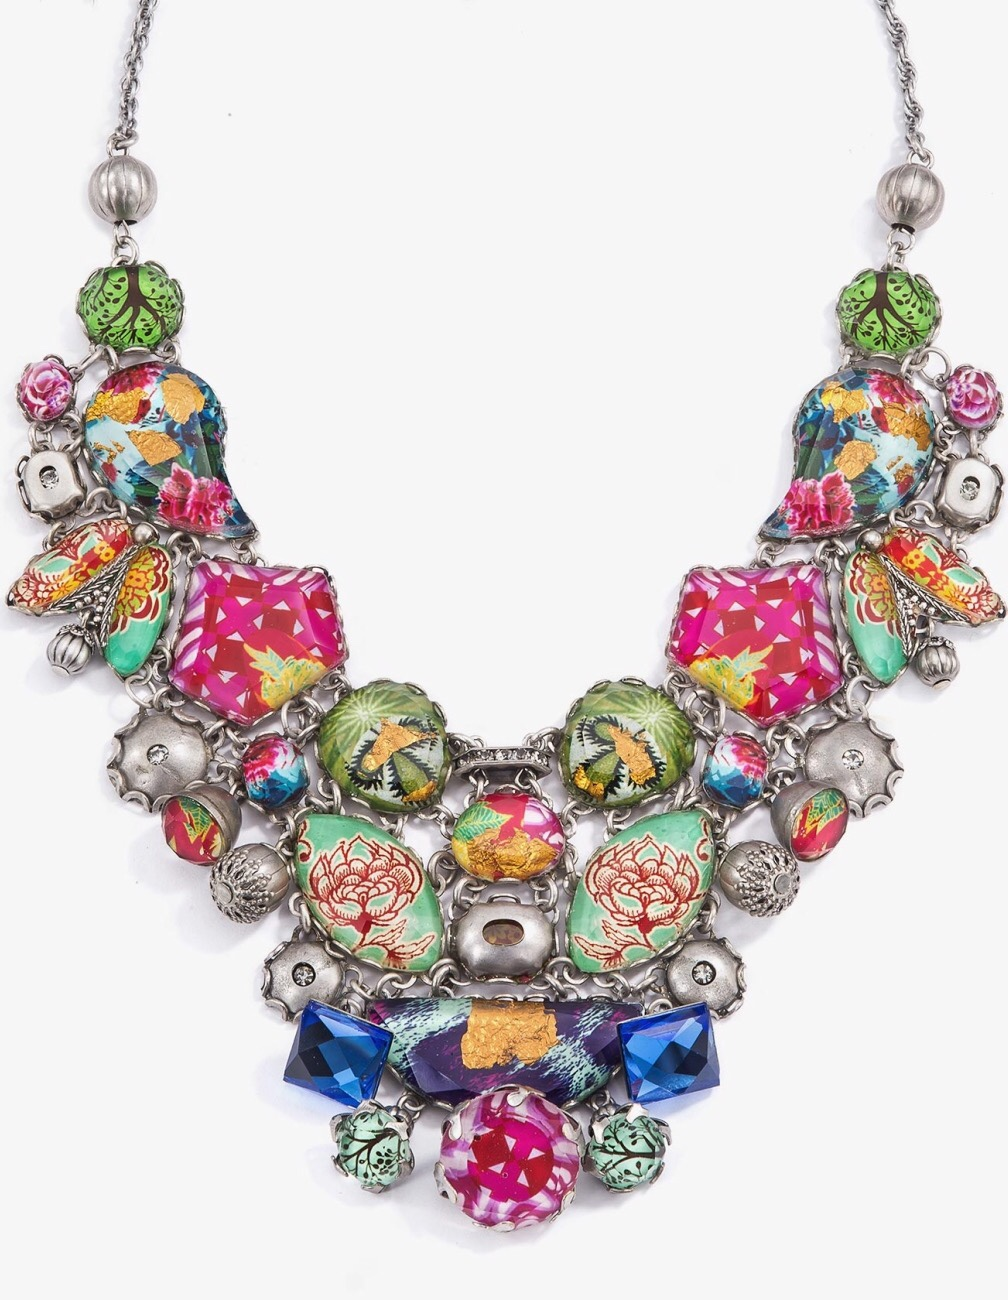 {Smitten} Summer 2015 Radiance Necklace In Pops of Pink Jeweled Hues by Ayala Bar via Haute Tramp